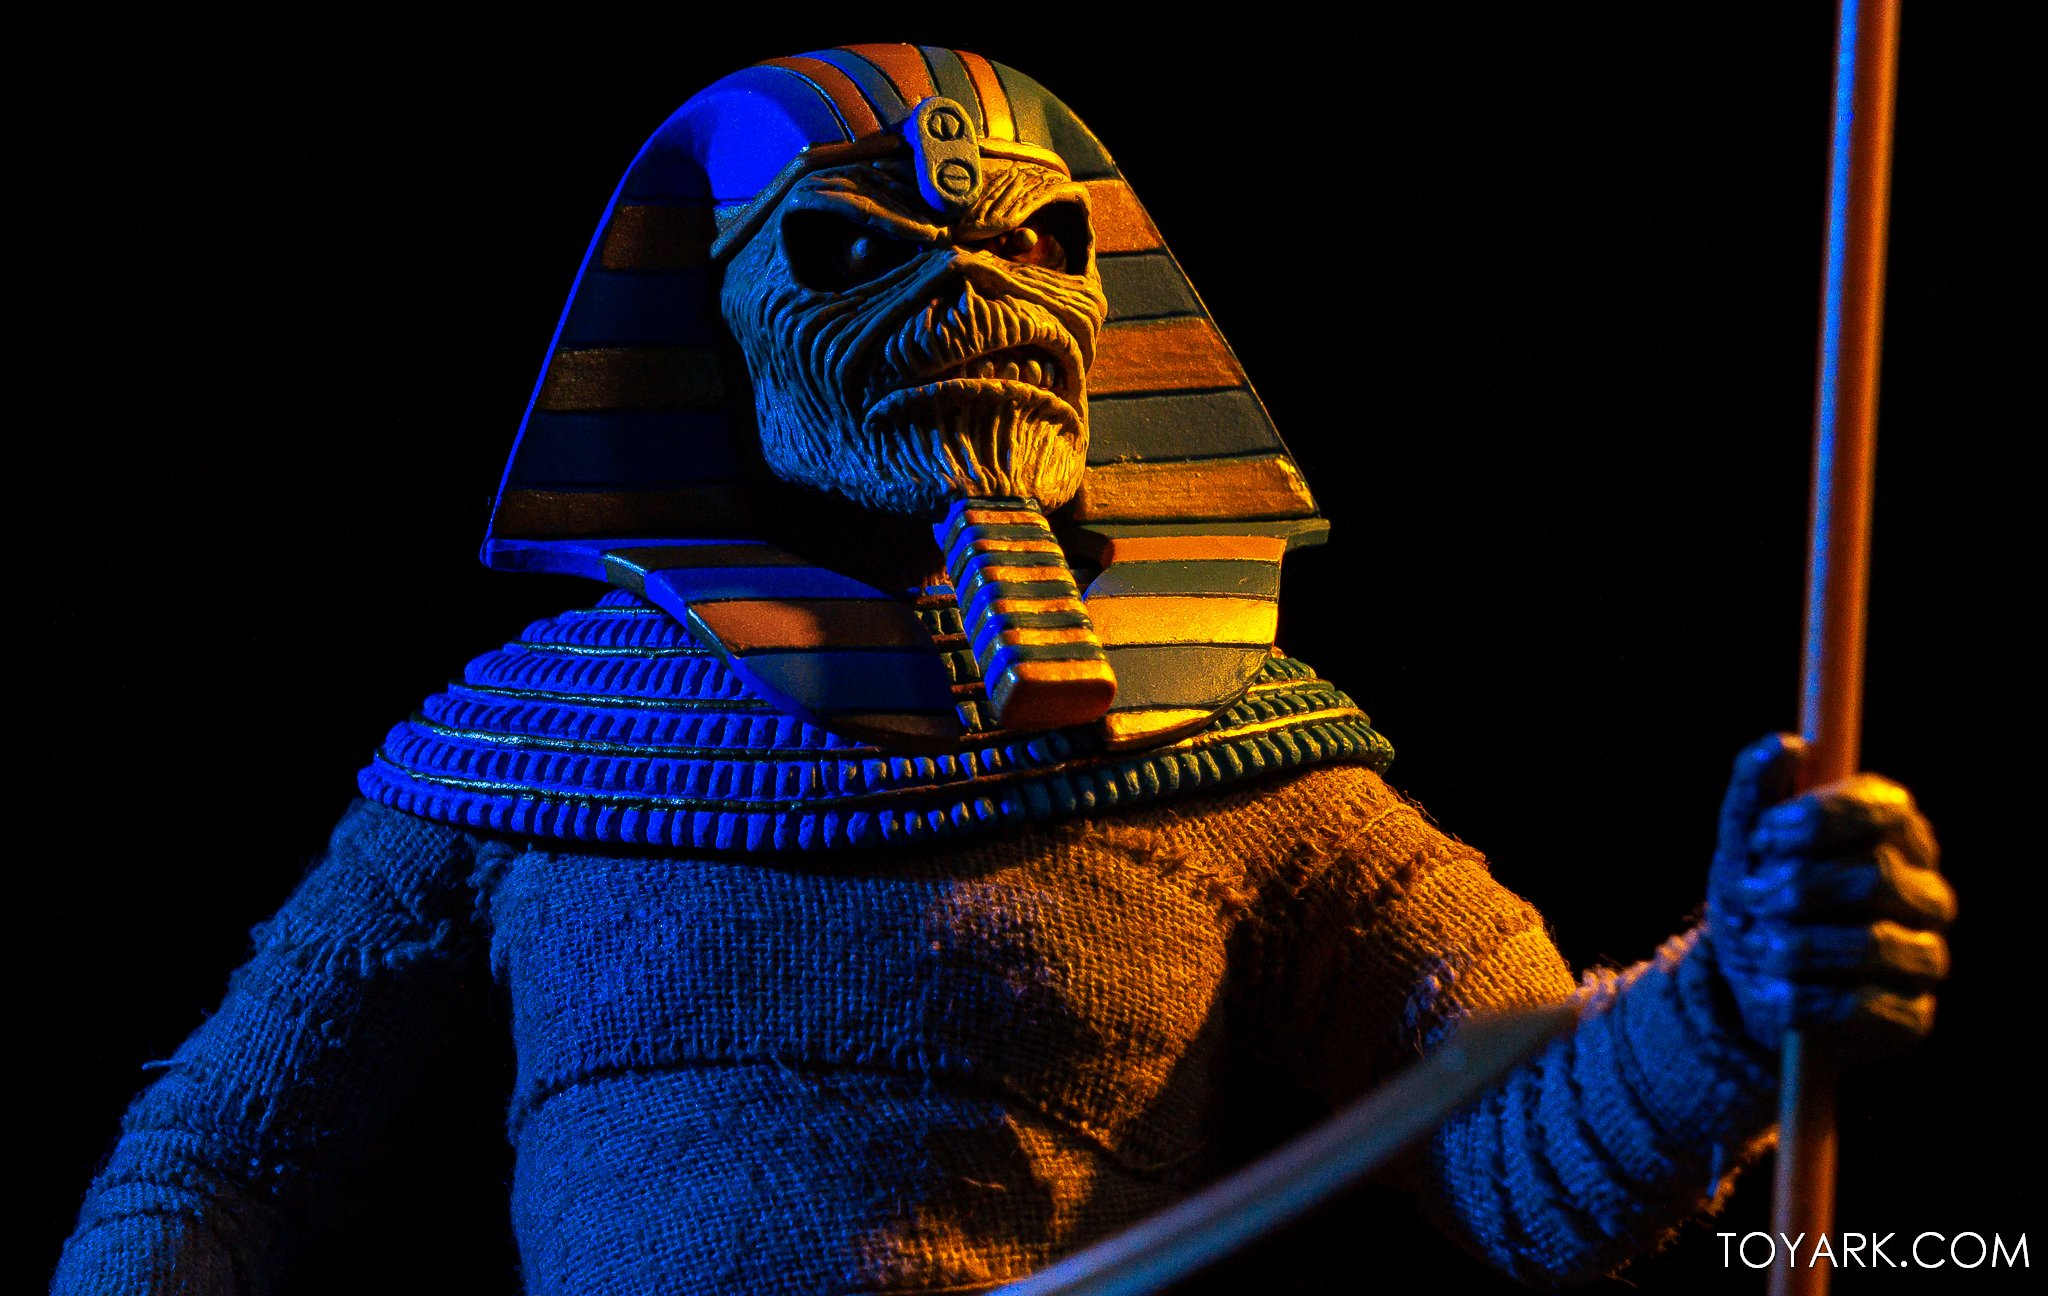 https://news.toyark.com/wp-content/uploads/sites/4/2020/06/NECA-Iron-Maiden-Powerslave-Eddie-013.jpg